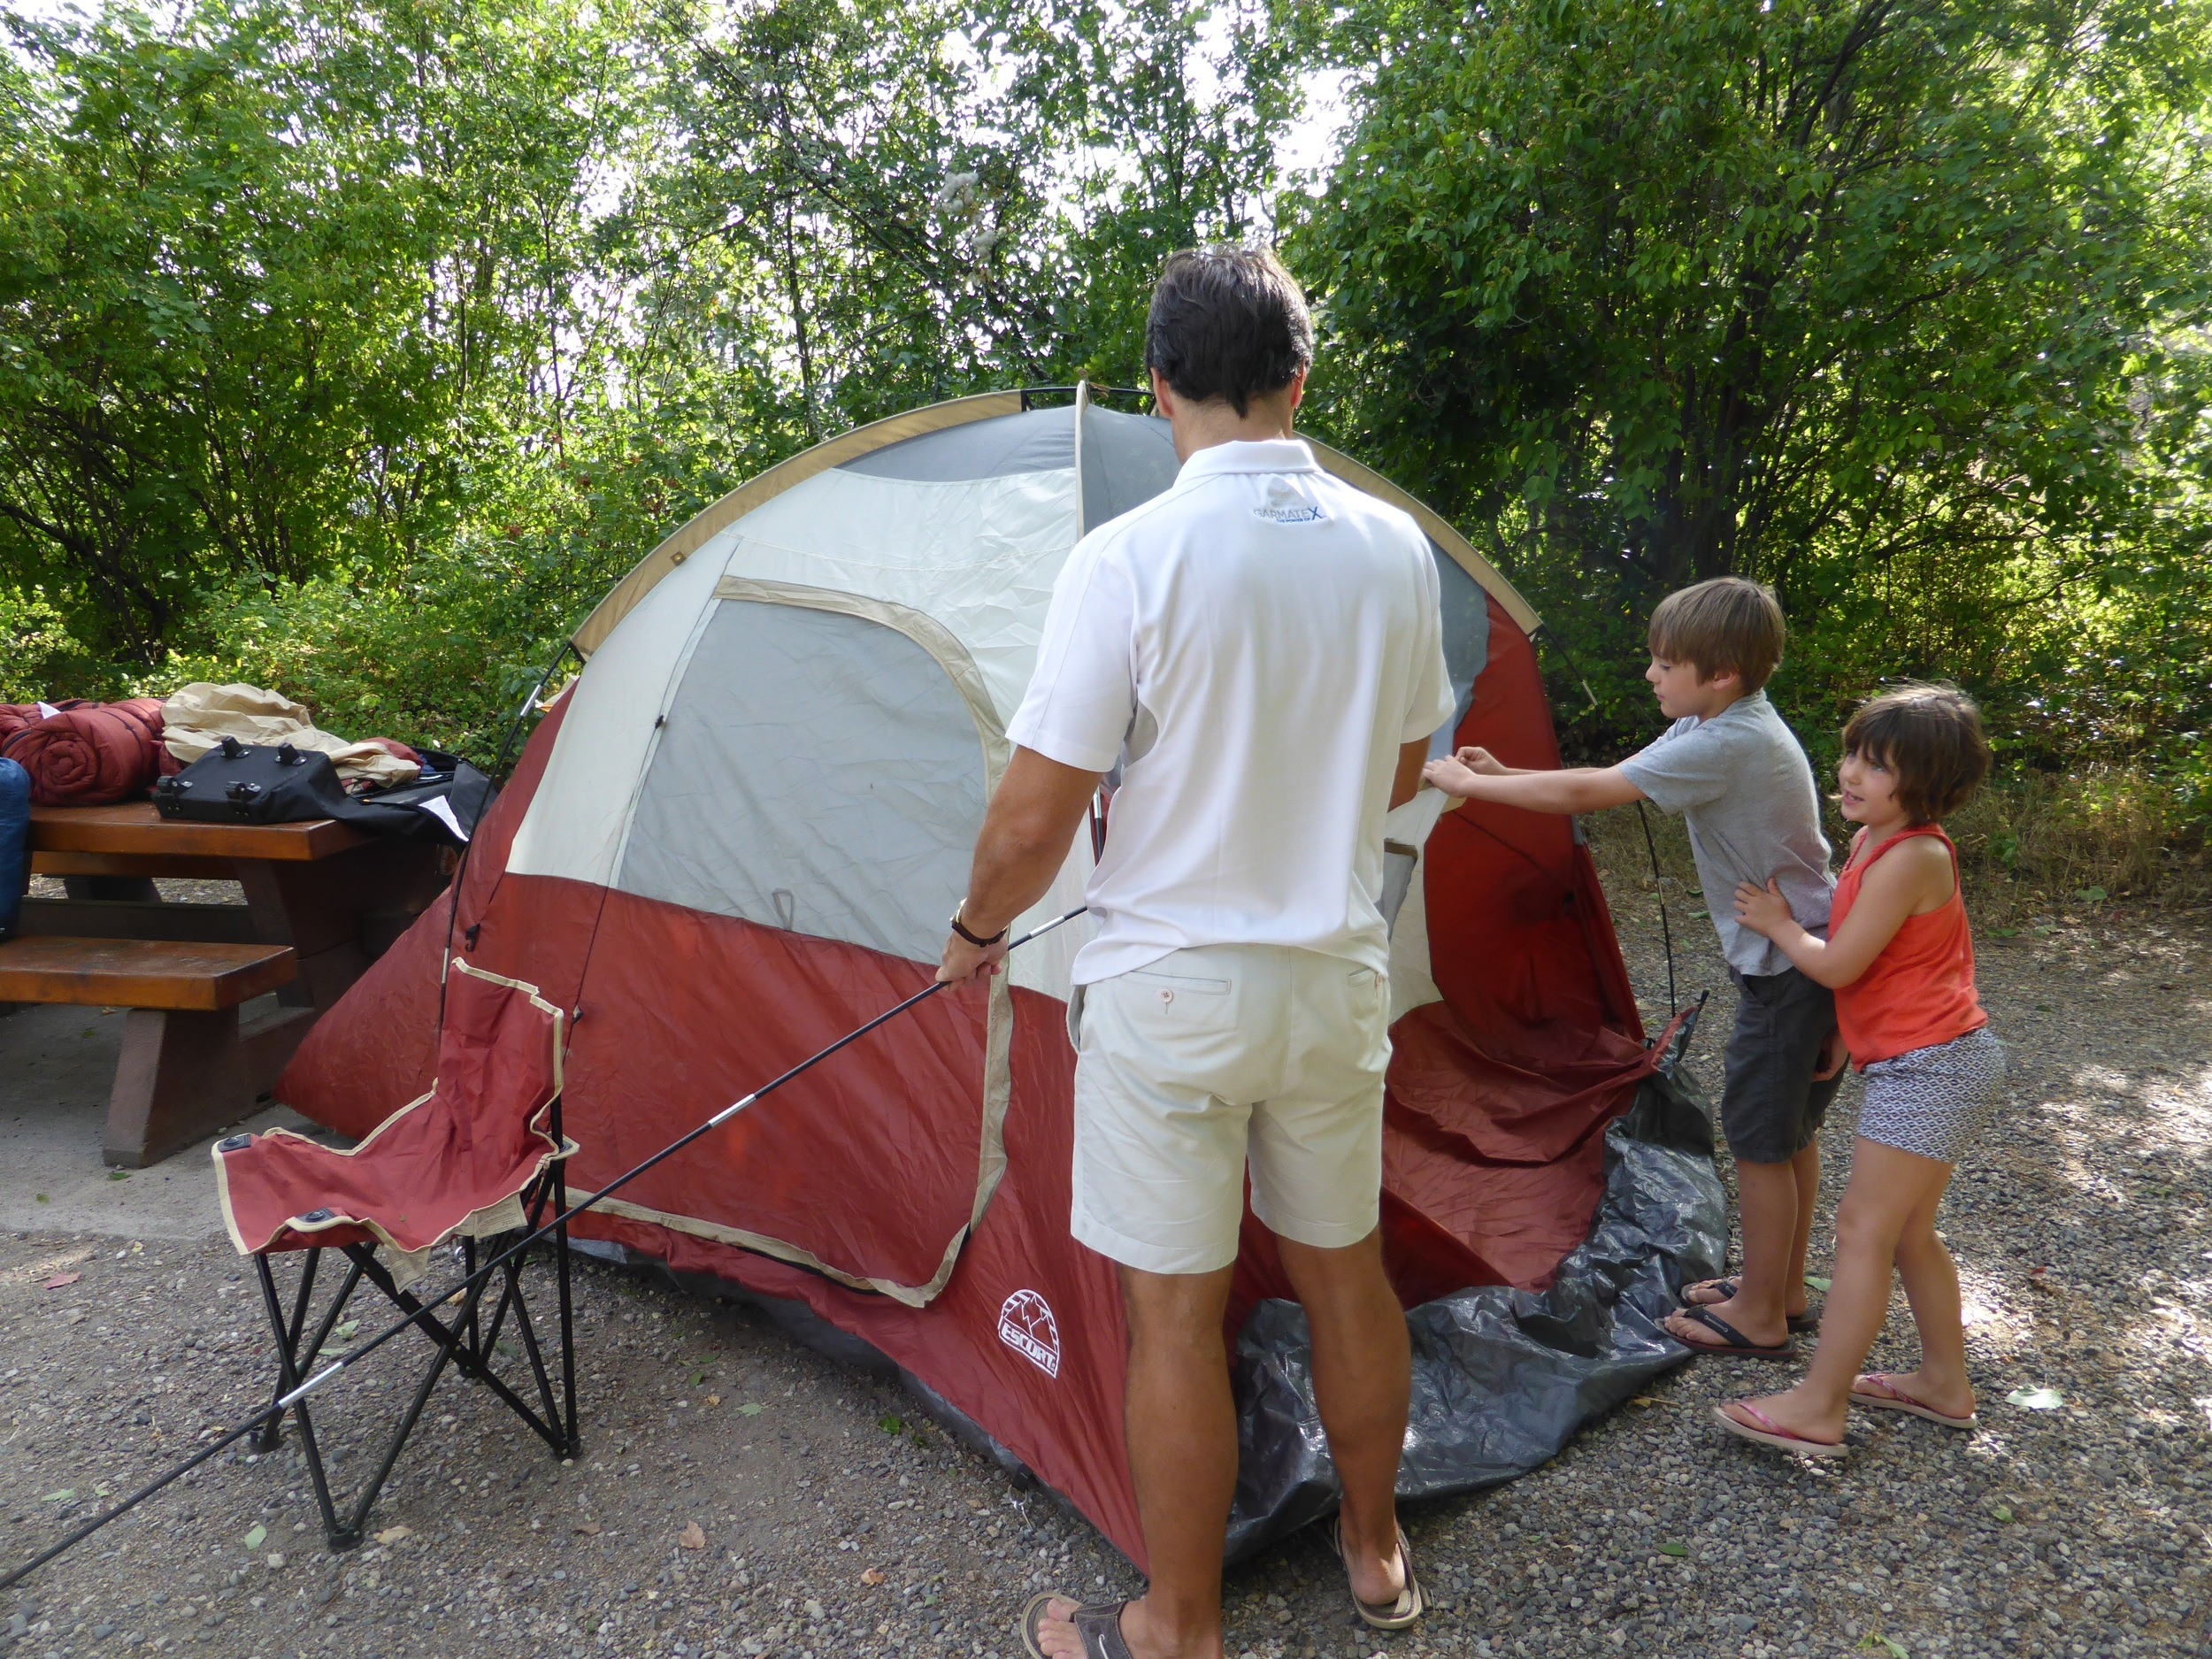 Tips for a First Family Camping Trip